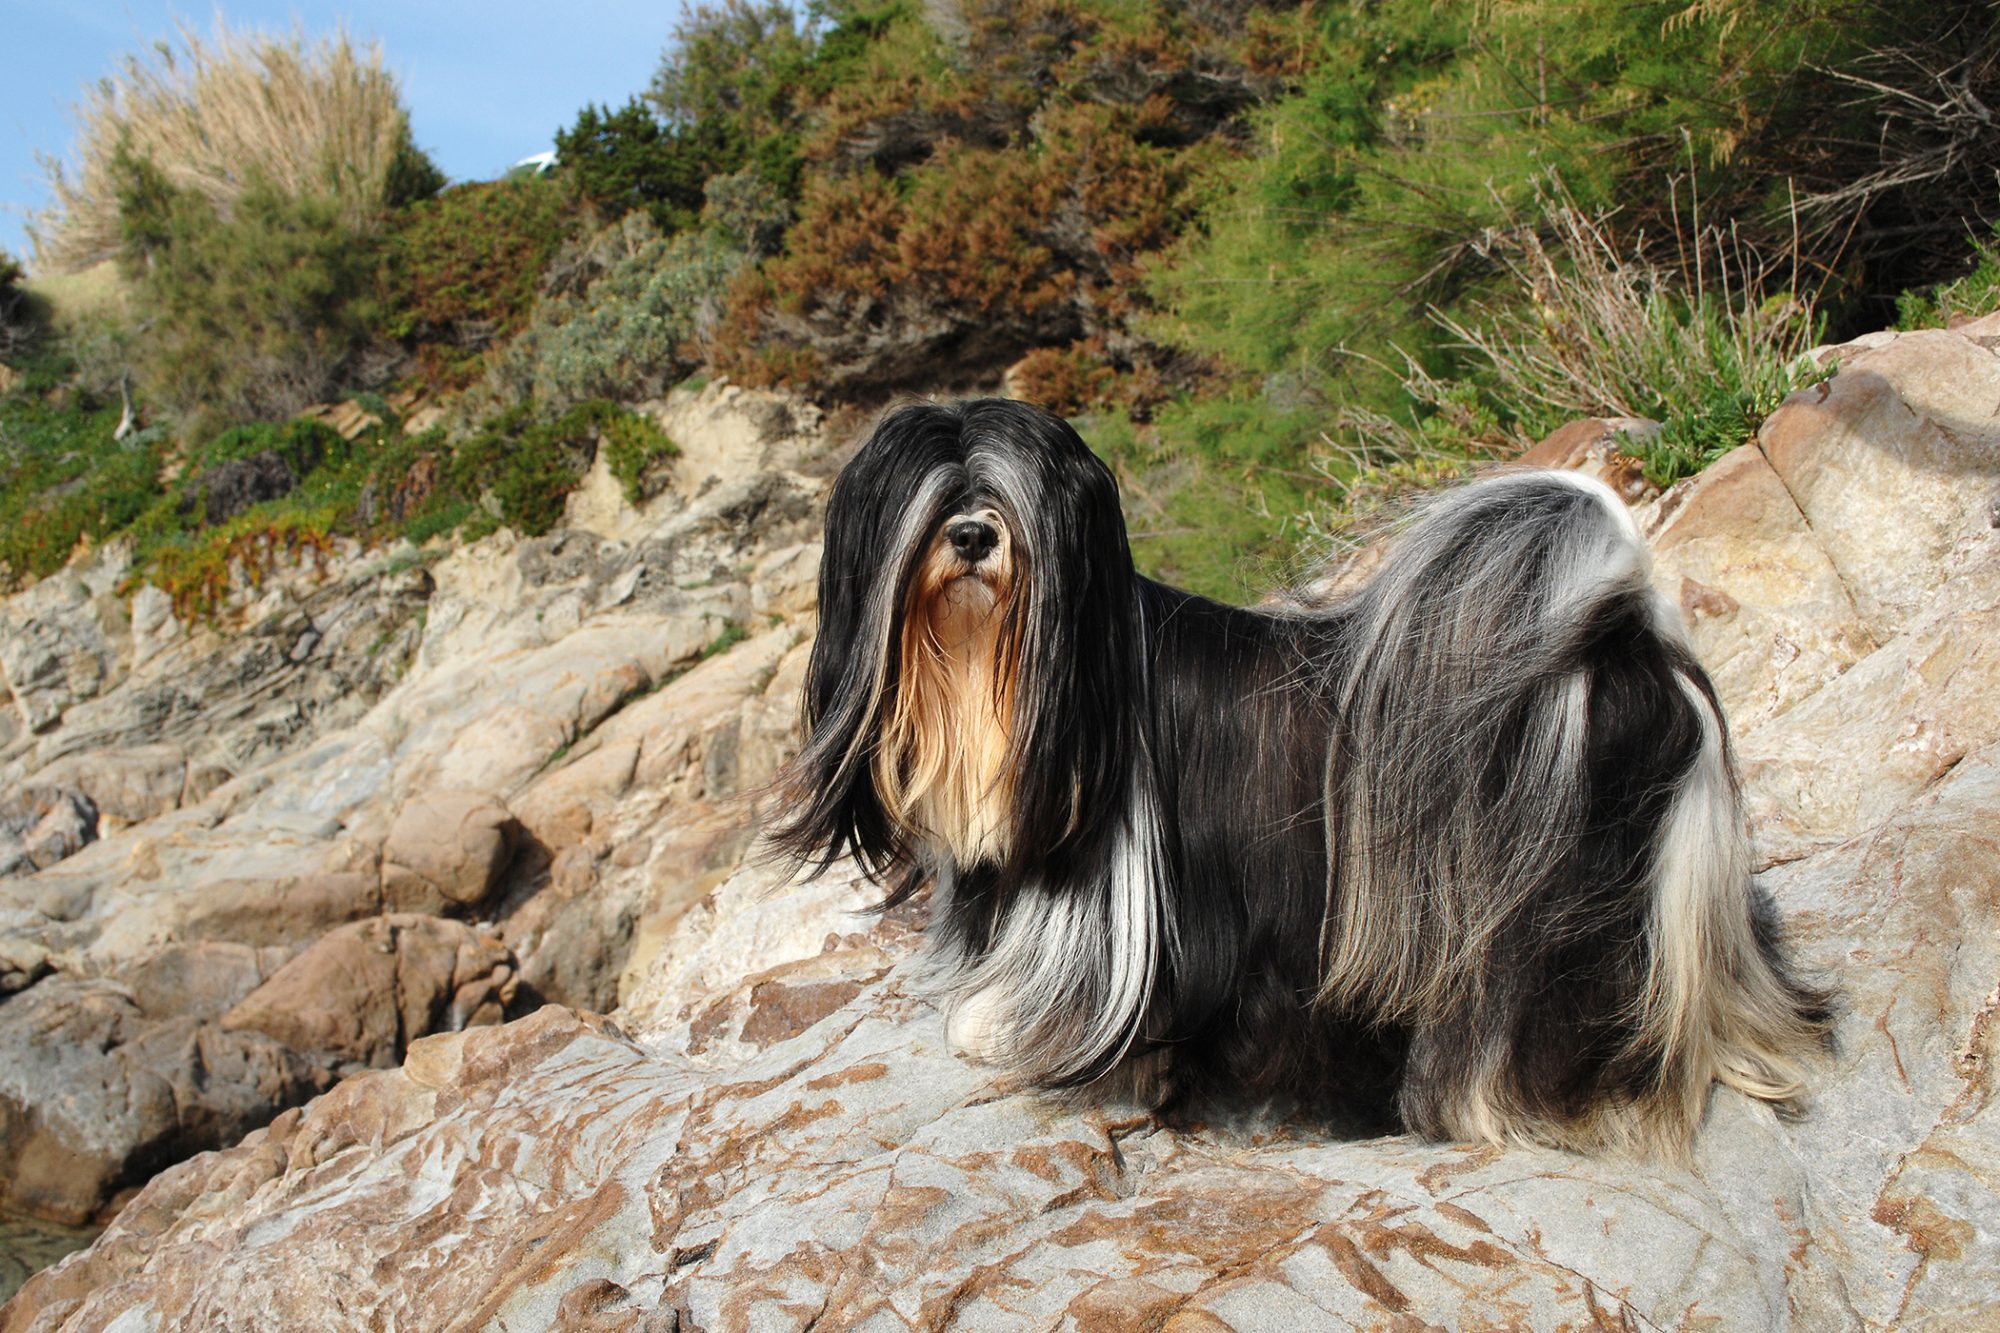 Lhasa Apso dog standing on rocky hill